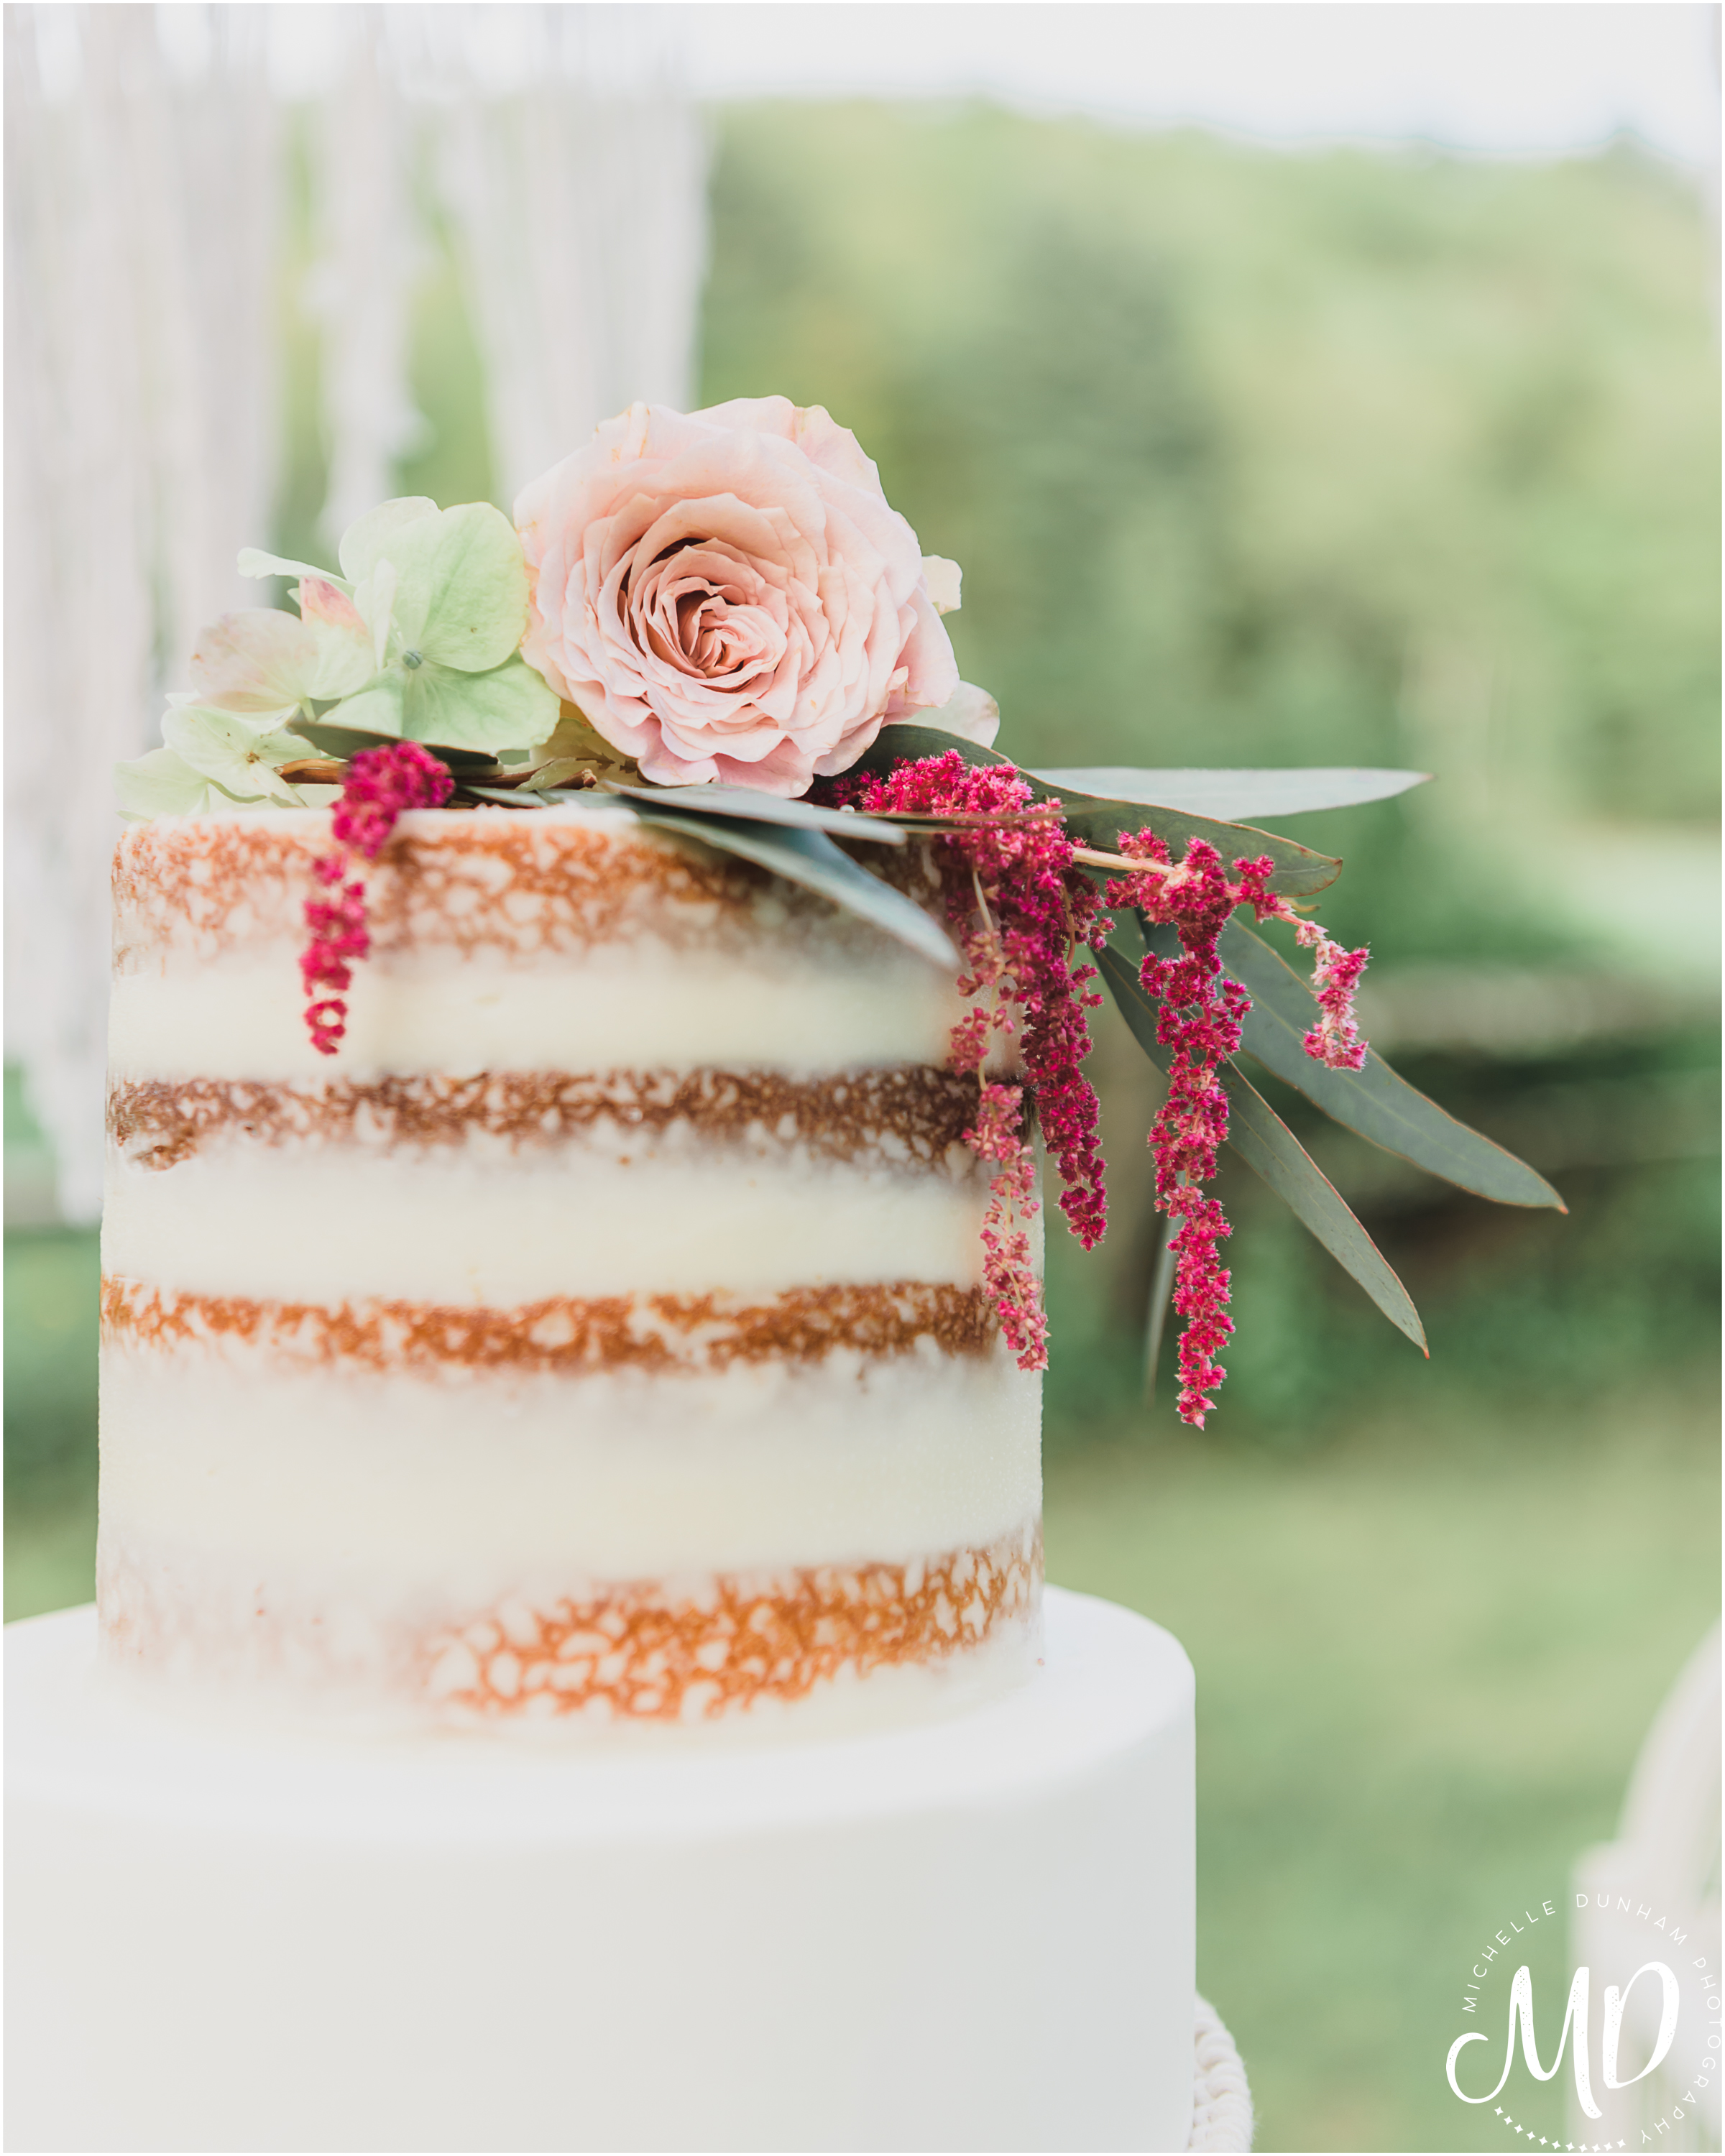 Michelle Dunham Photography_Boho_WeddingCake_1.jpg